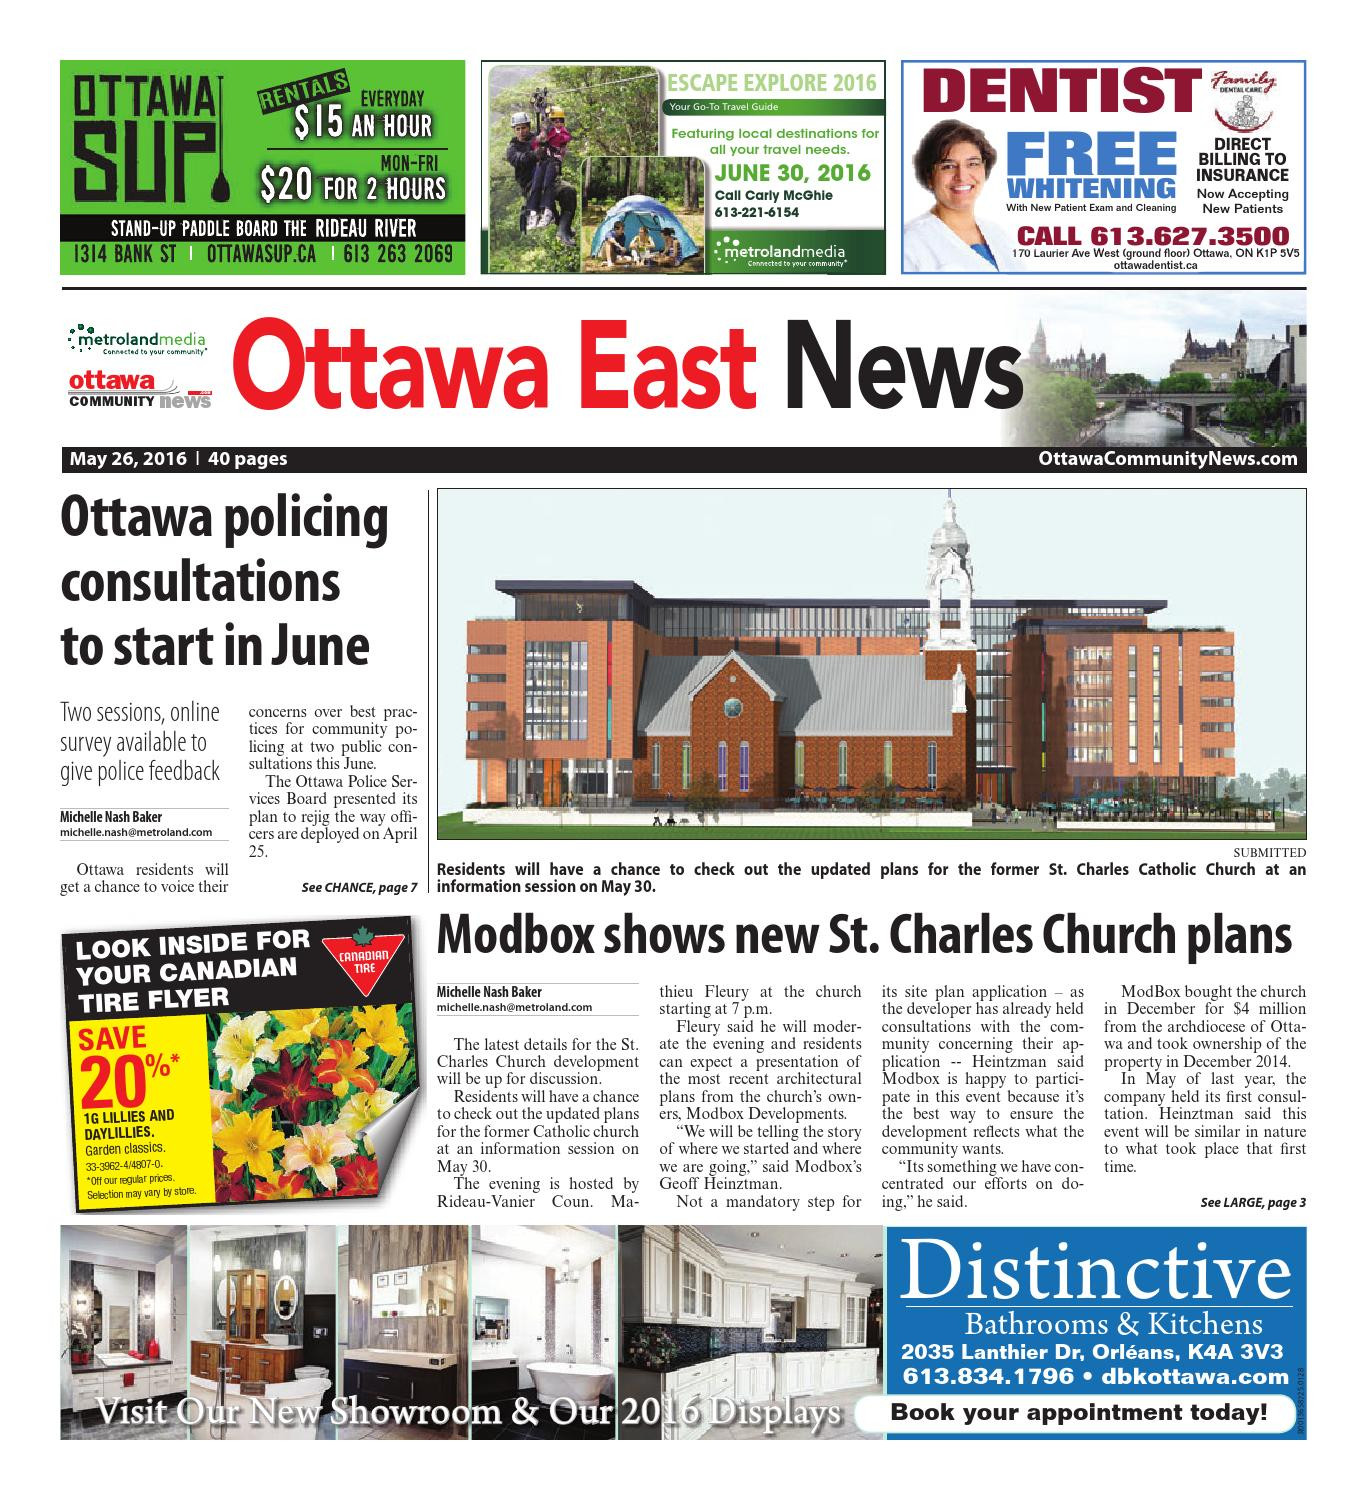 Hardwood Floor Refinishing Ottawa Ontario Of Ottawaeastnews052616 by Metroland East Ottawa East News issuu Inside Page 1